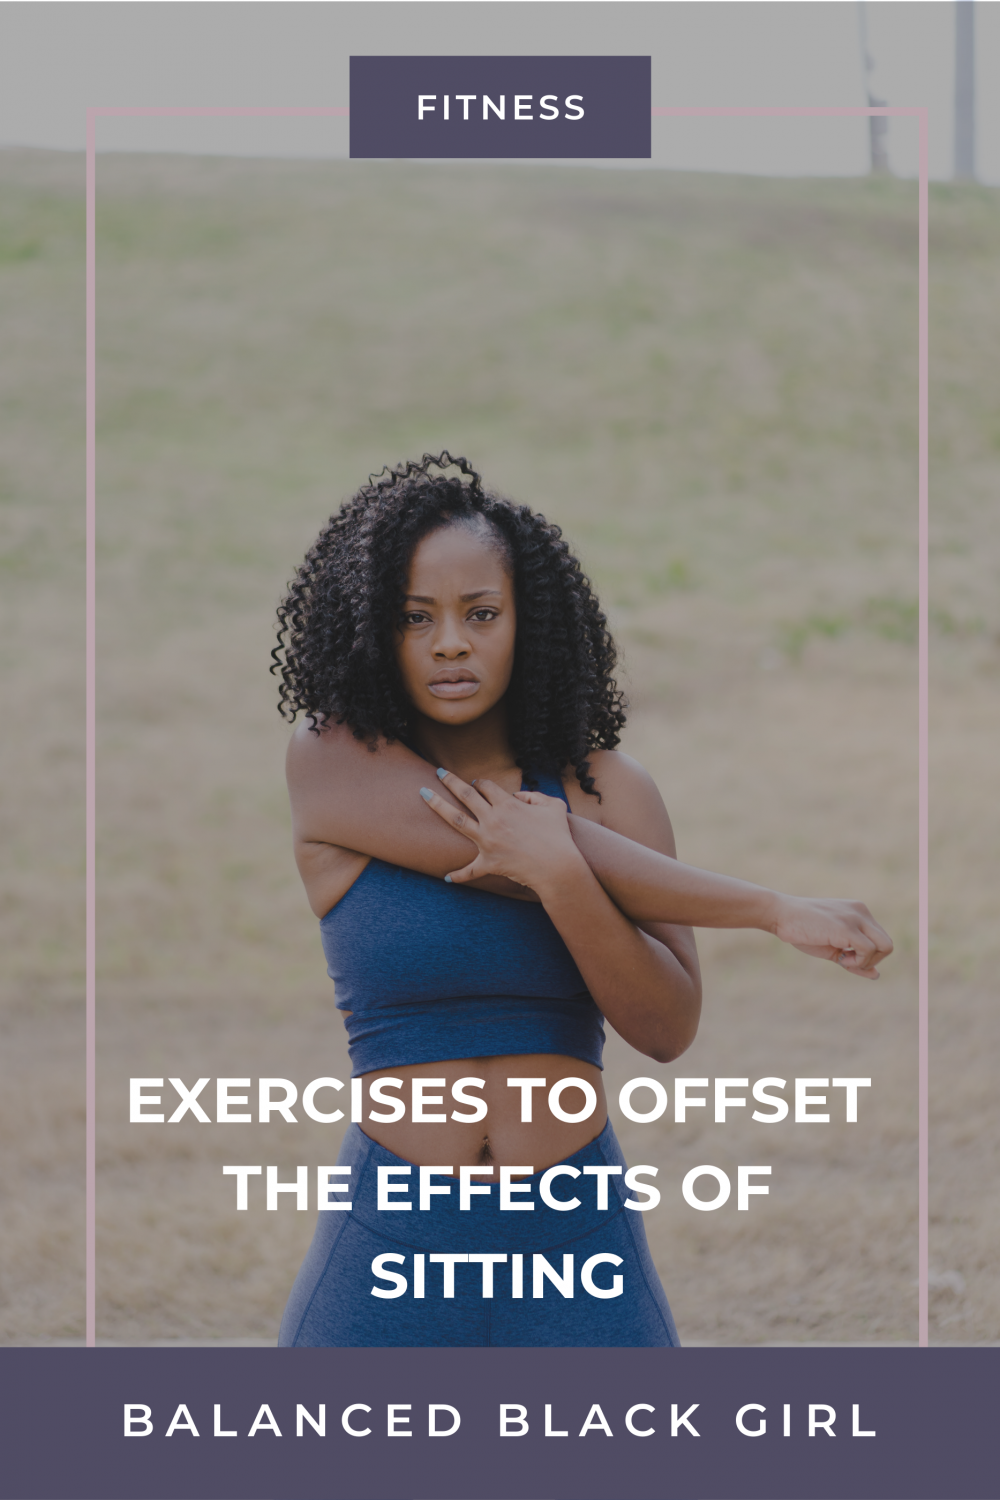 Exercises to Offset the Effects of Sitting